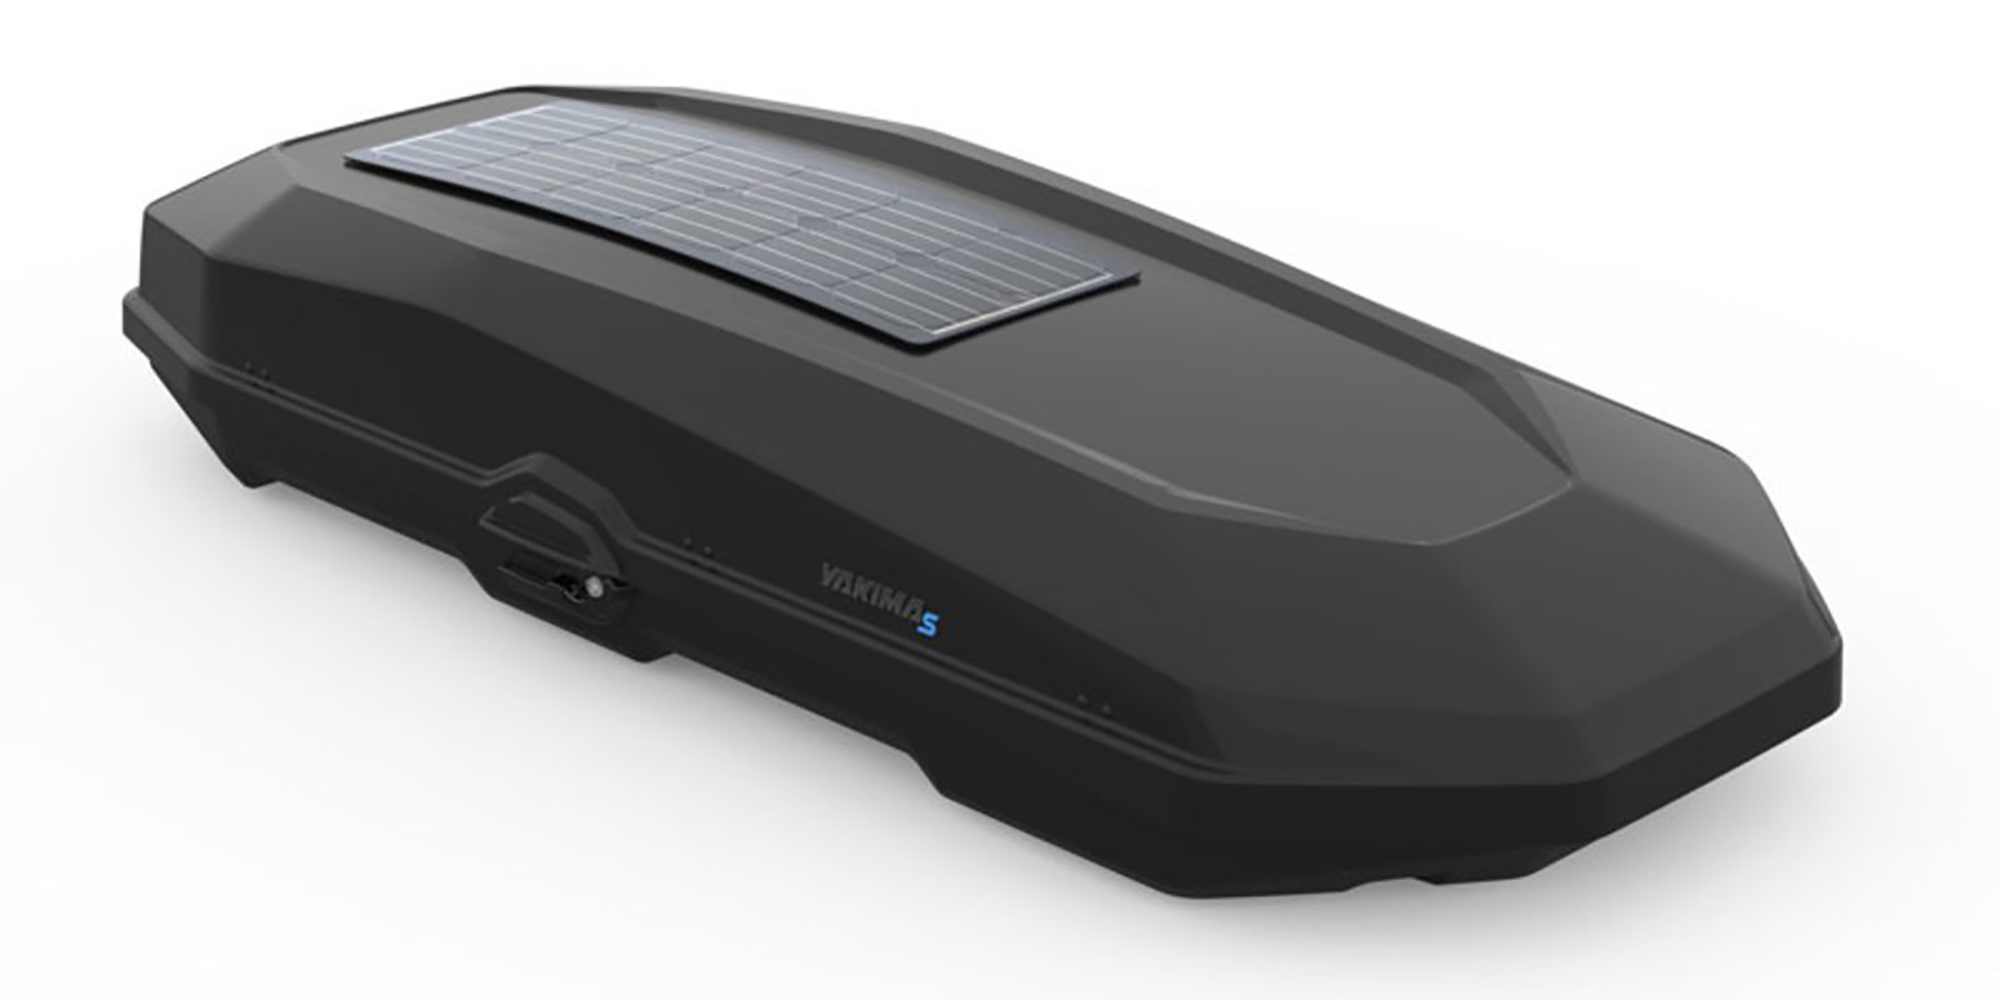 Yamika solar car toppers leverage the sun - 9to5Toys